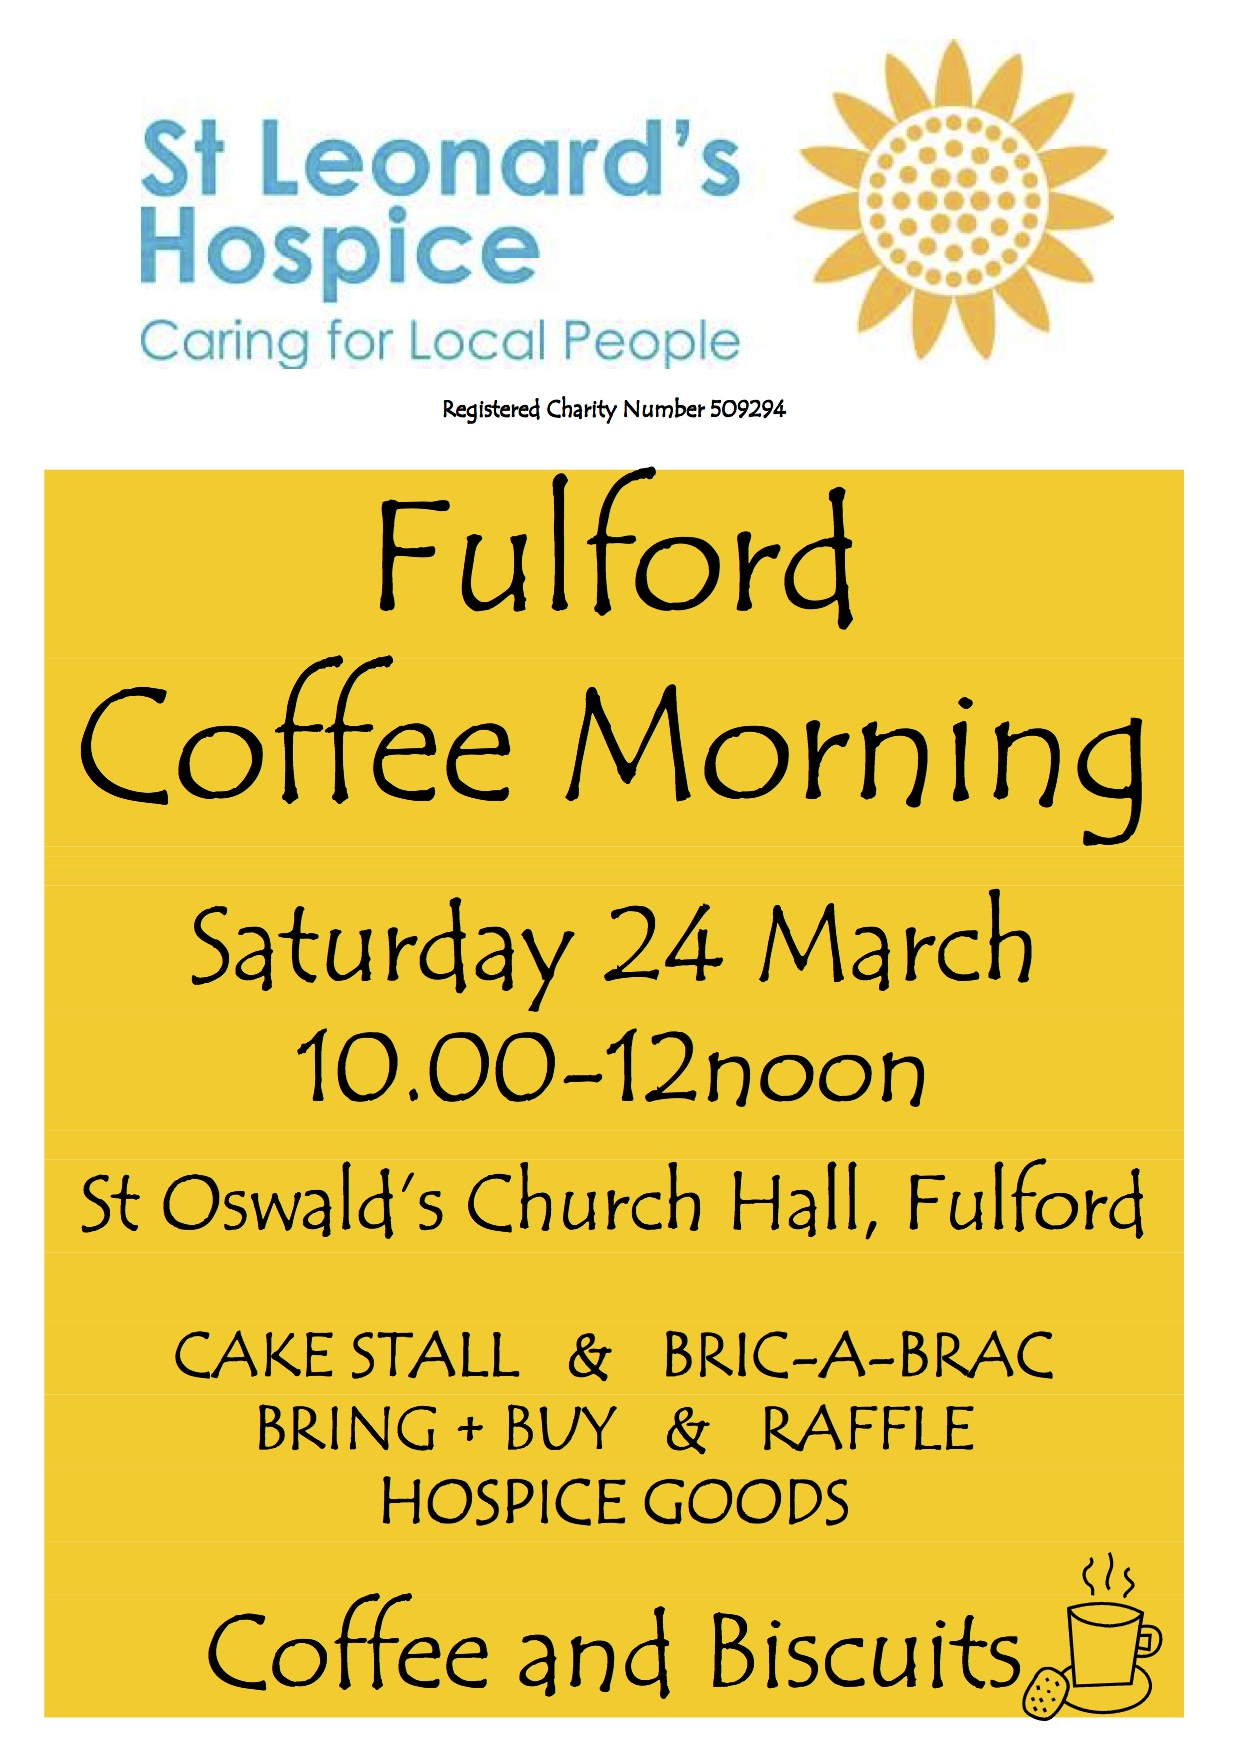 Fulford Coffee Morning in aid of St Leonard's Hospice